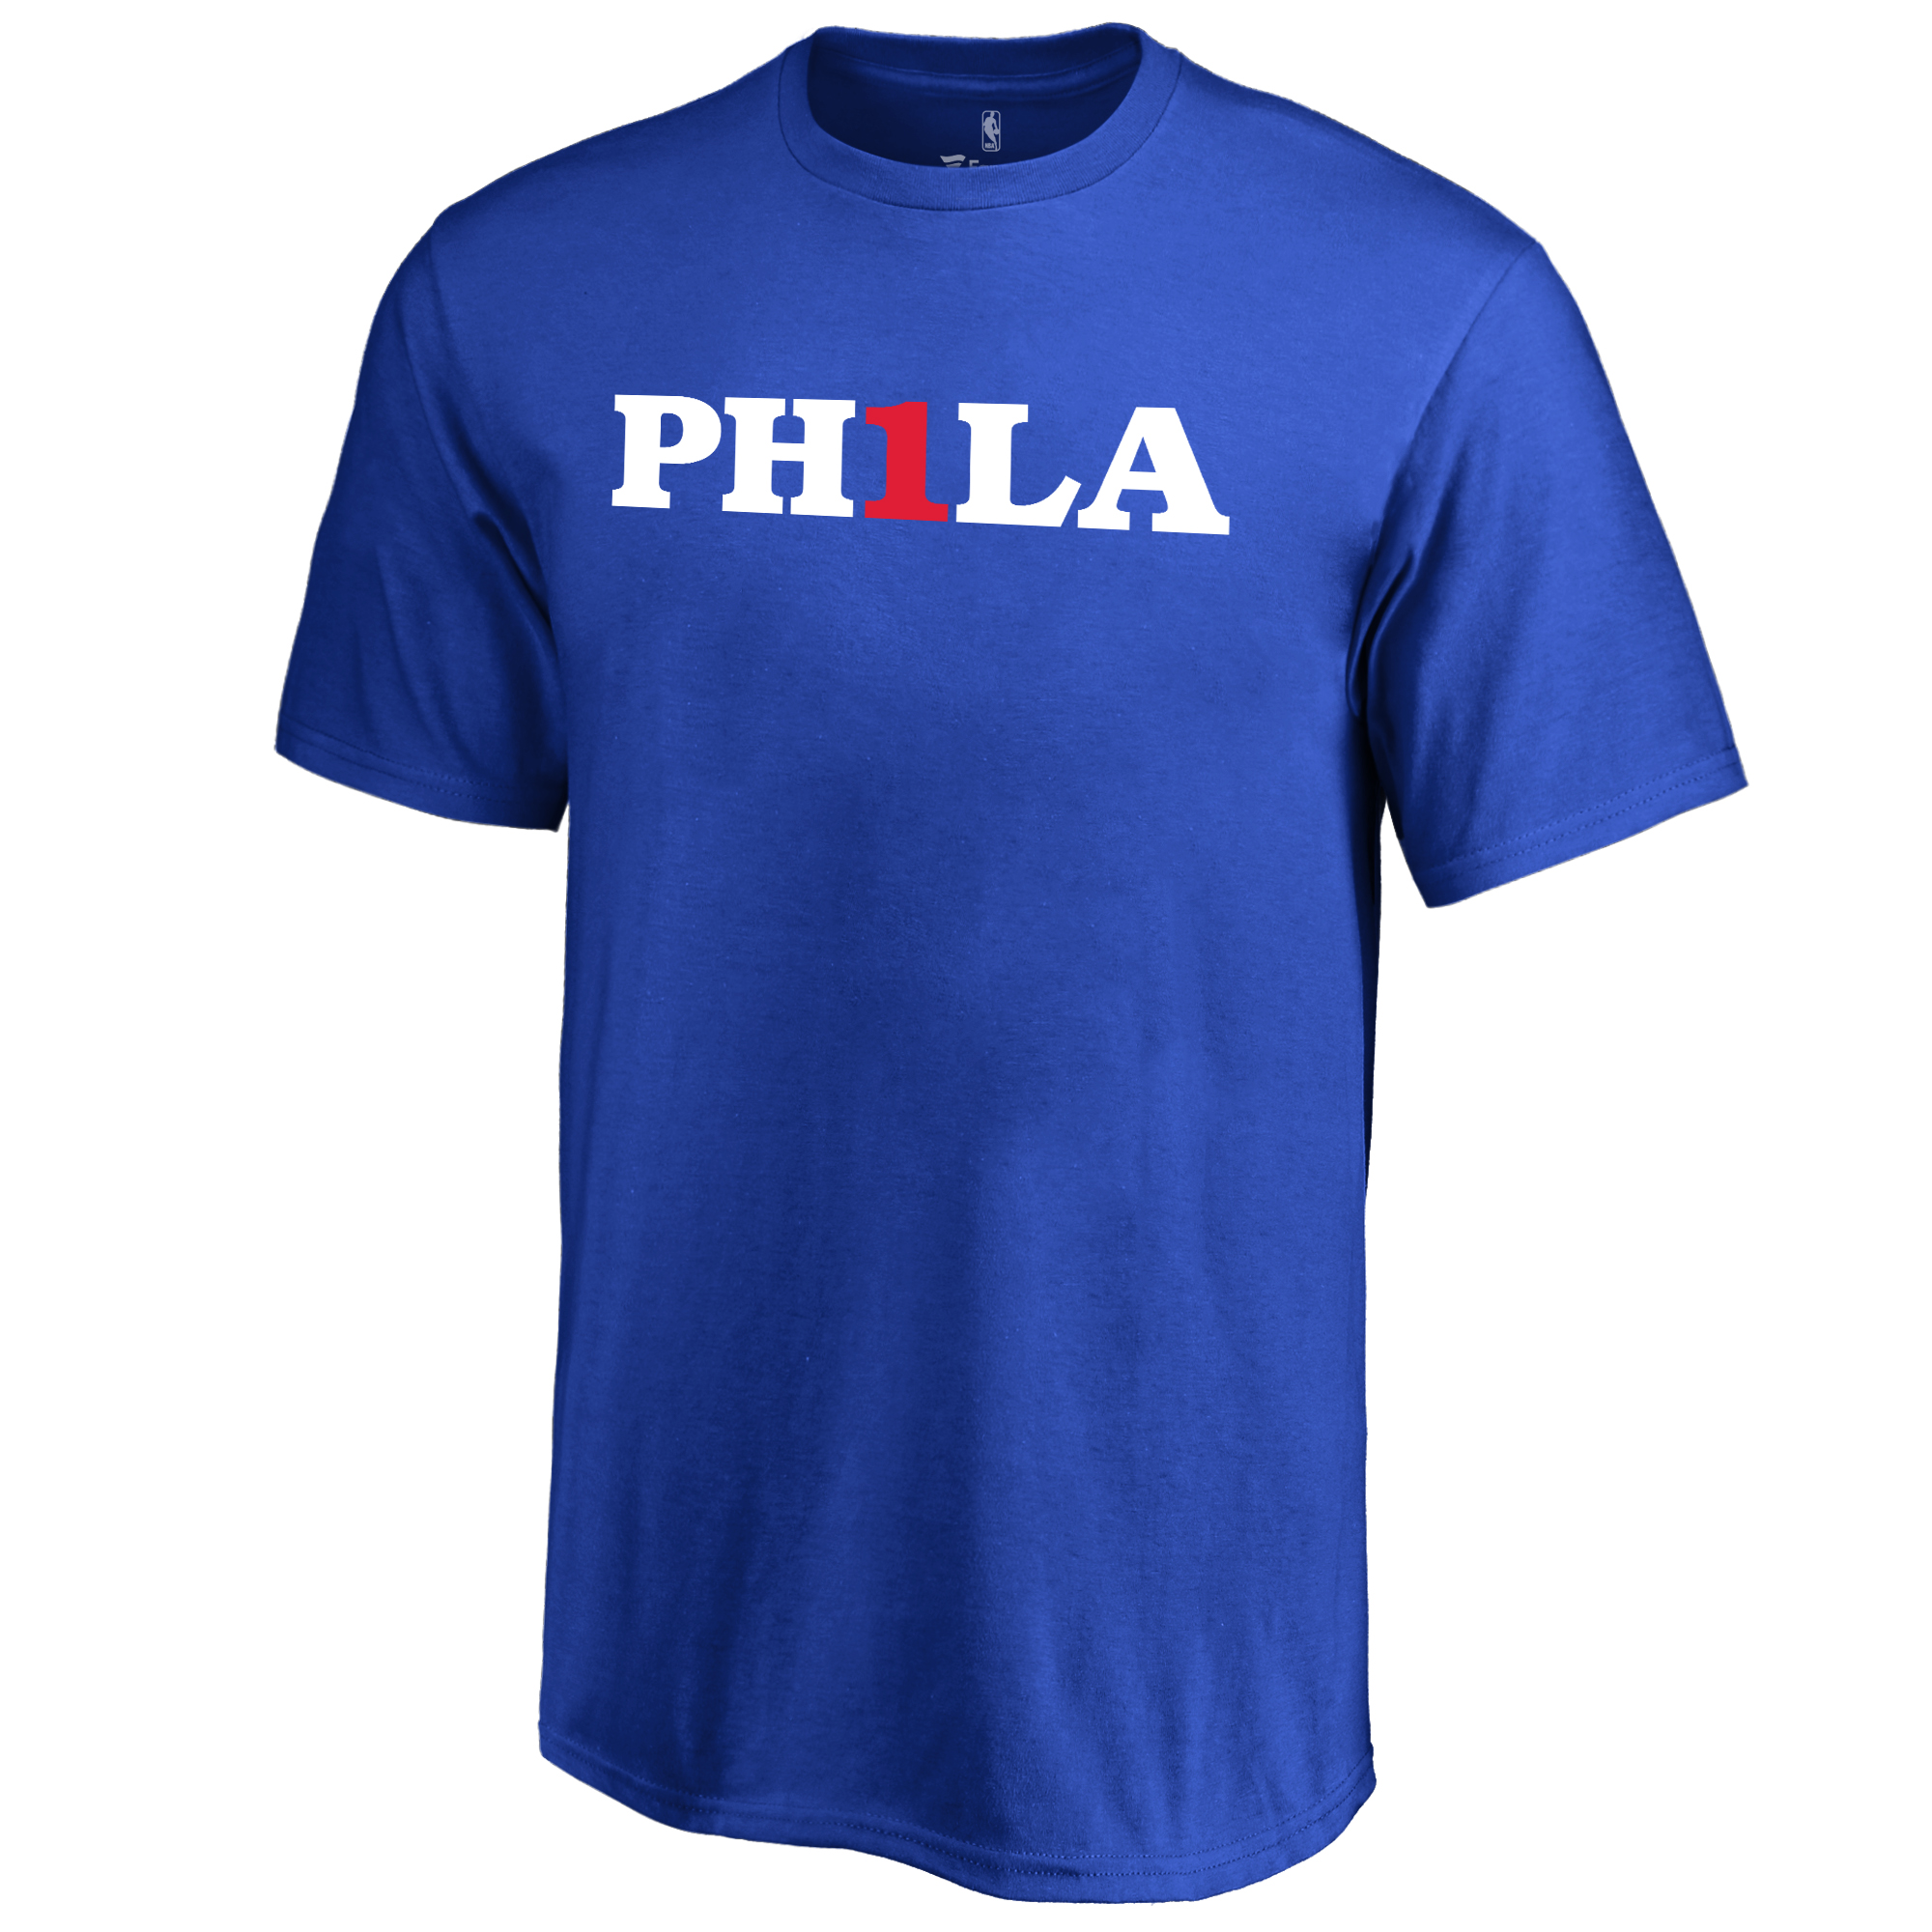 Philadelphia 76ers Youth PH1LAFIRST T-Shirt - Royal